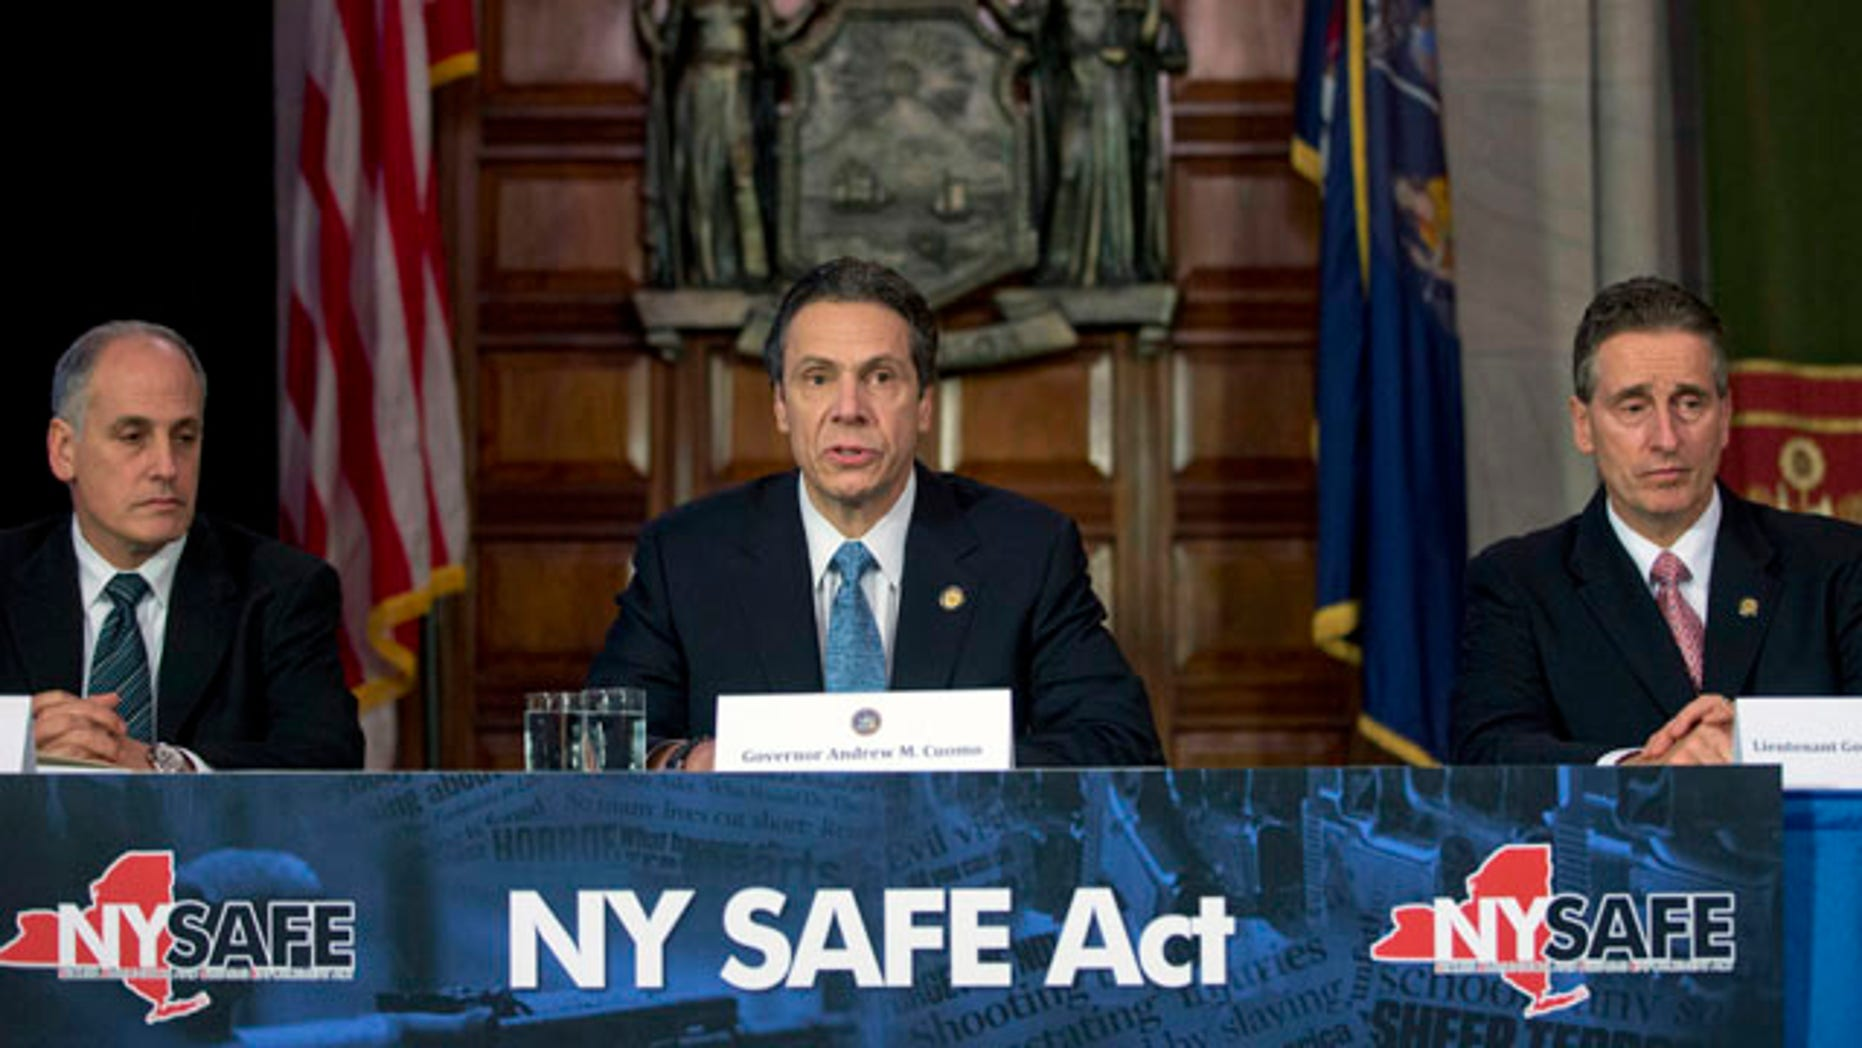 Jan. 14, 2013: New York Gov. Andrew Cuomo, center, speaks during a news conference announcing an agreement with legislative leaders on New York's Secure Ammunition and Firearms Enforcement Act in the Red Room at the Capitol.